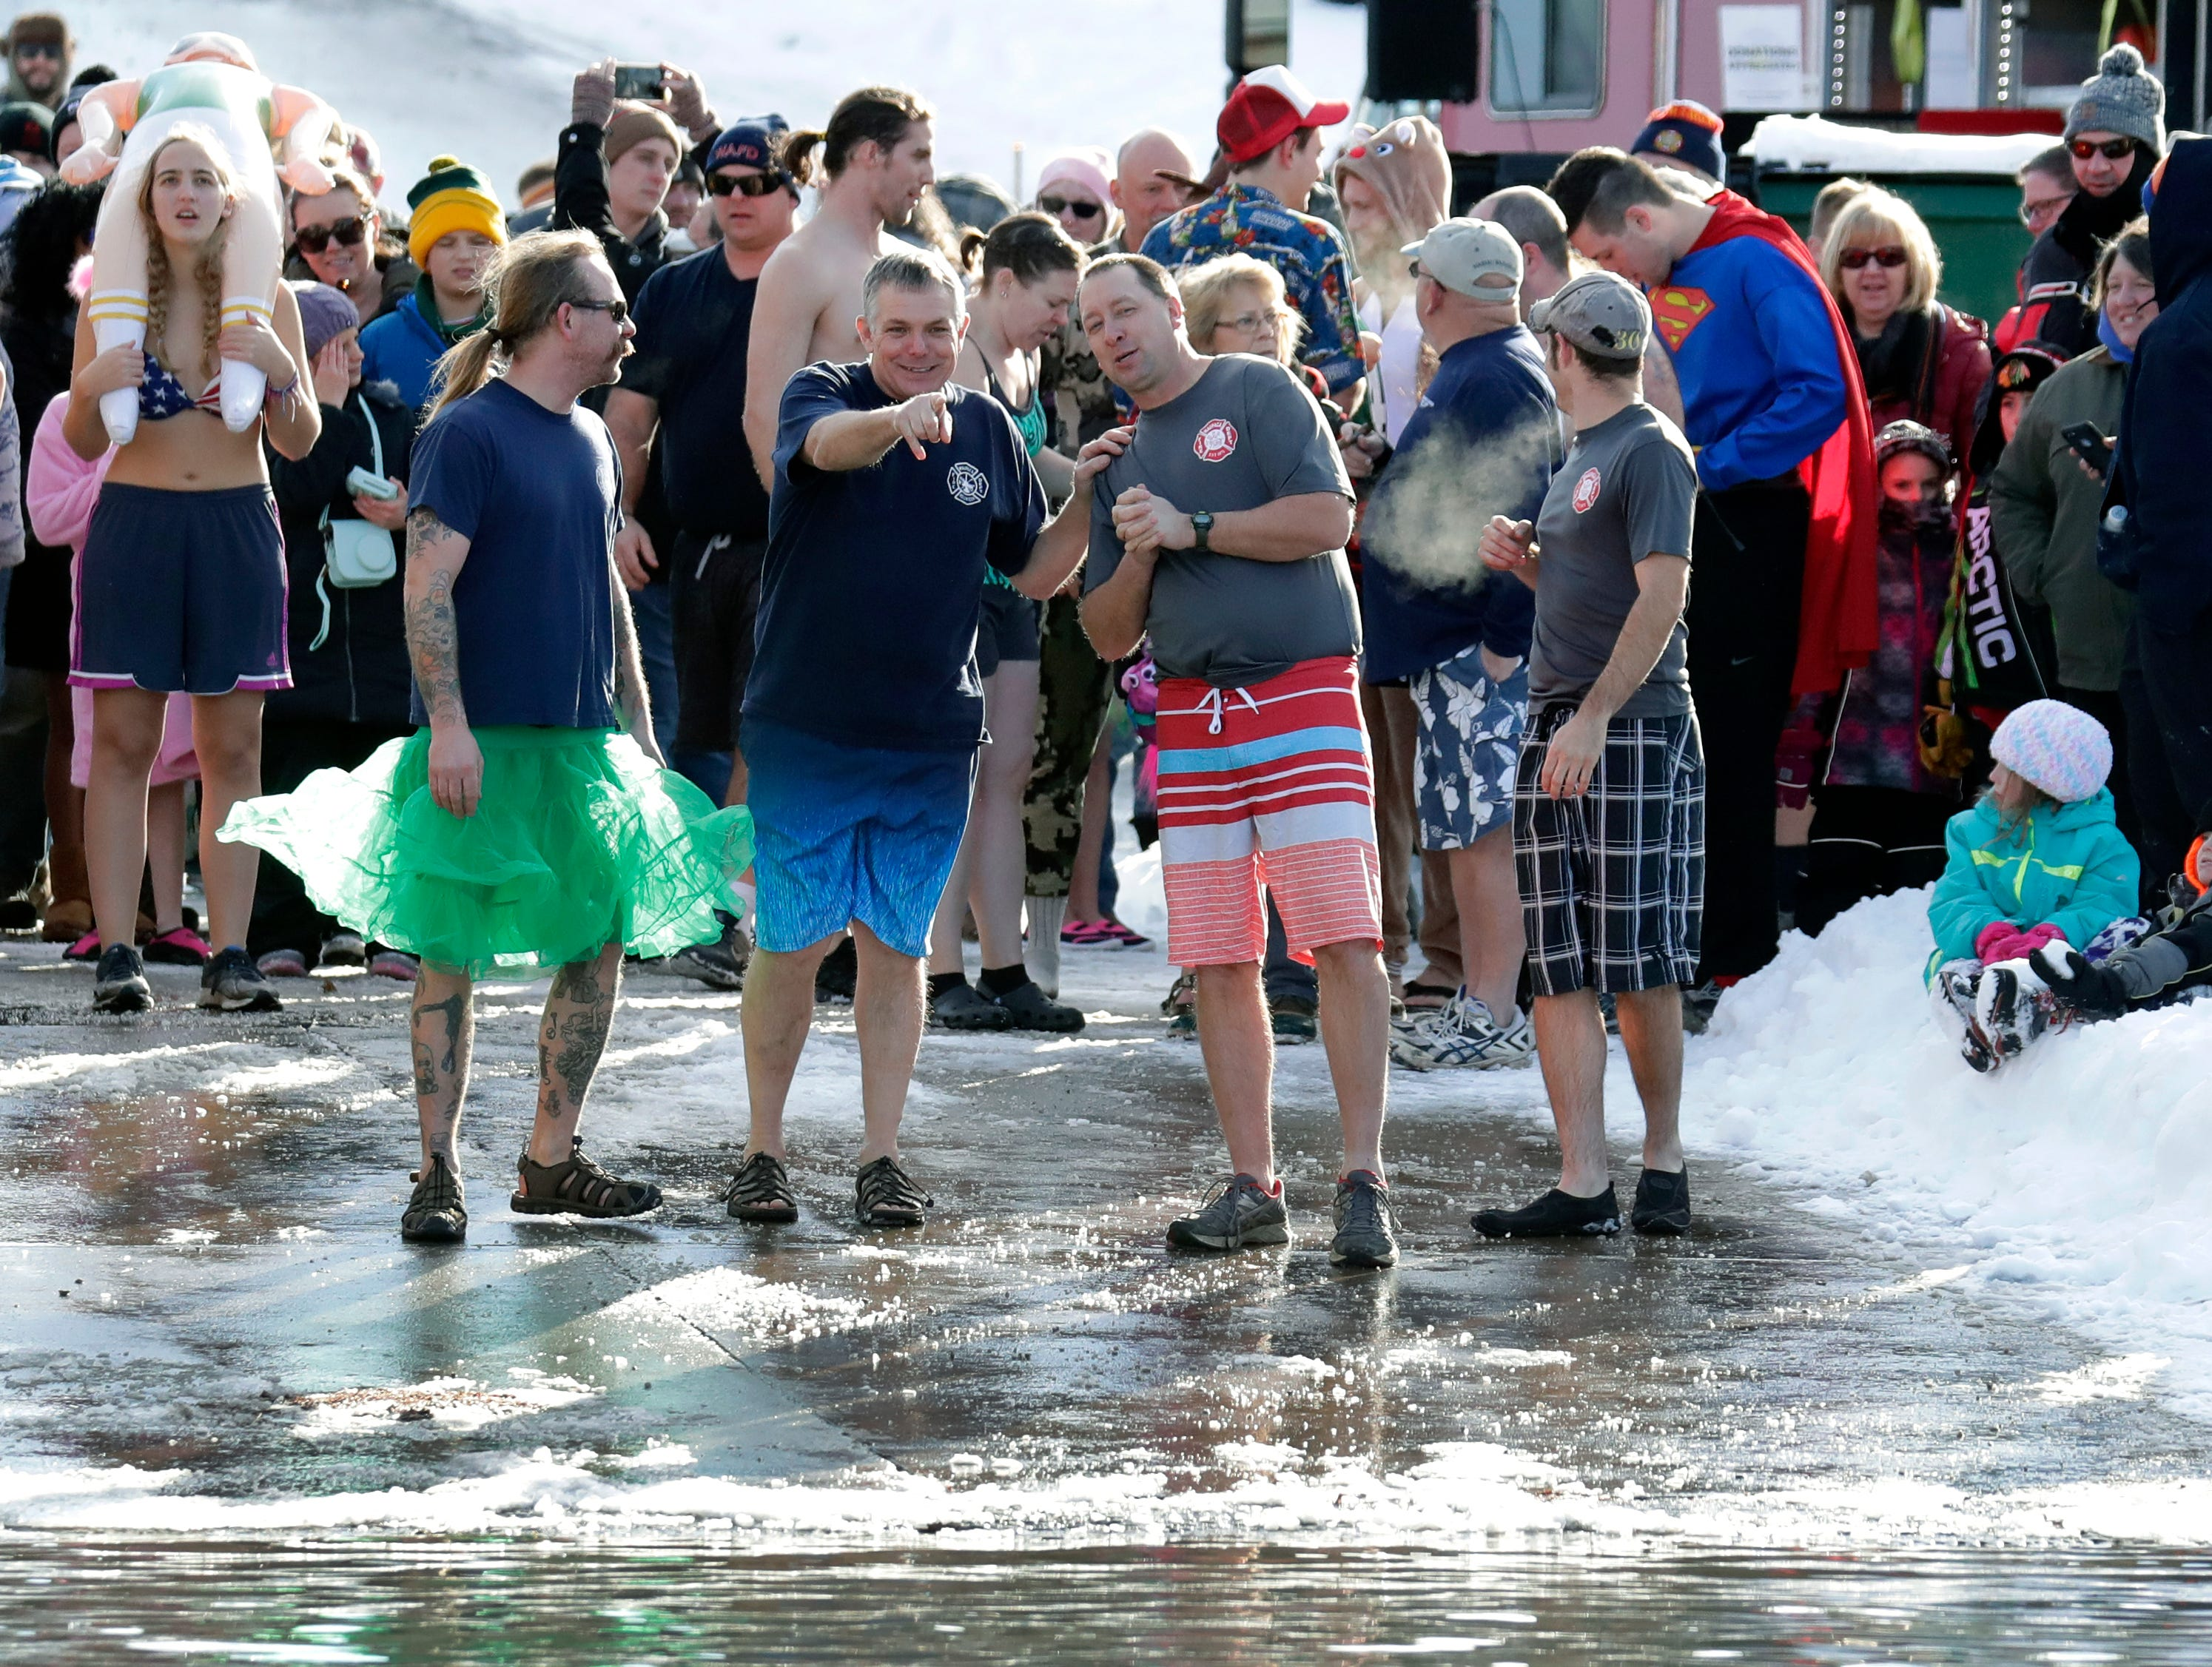 Participants wait for the countdown during the Polar Bear Plunge Tuesday, January 1, 2019, at Becker Marine on Lime Kiln Lake in Waupaca, Wis. Dan Powers/USA TODAY NETWORK-Wisconsin